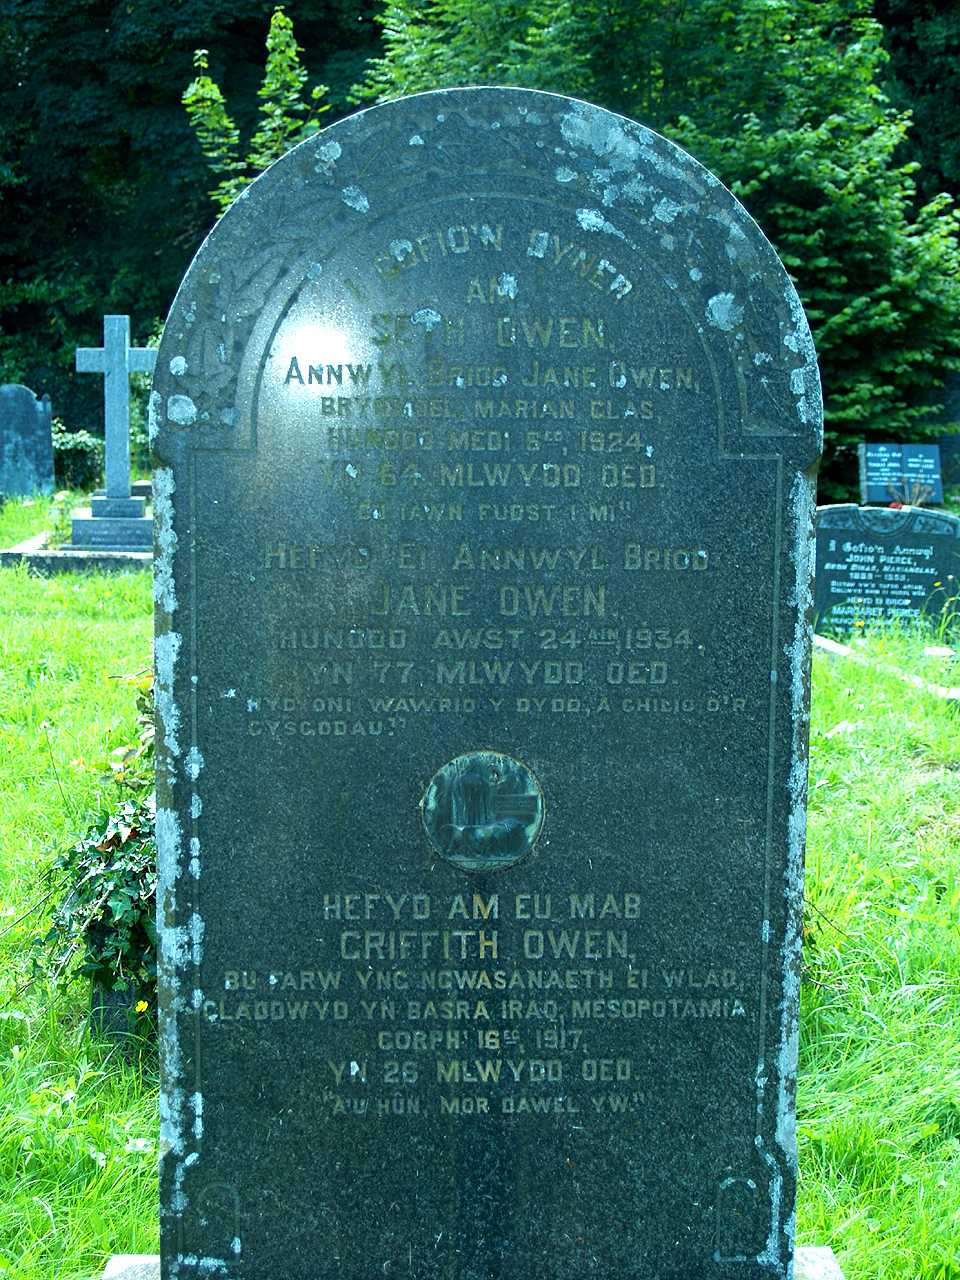 Anglesey, Llaneugrad, WWI Grave - a Memorial to Griffith Owen with inlaid Dead Mans Penny